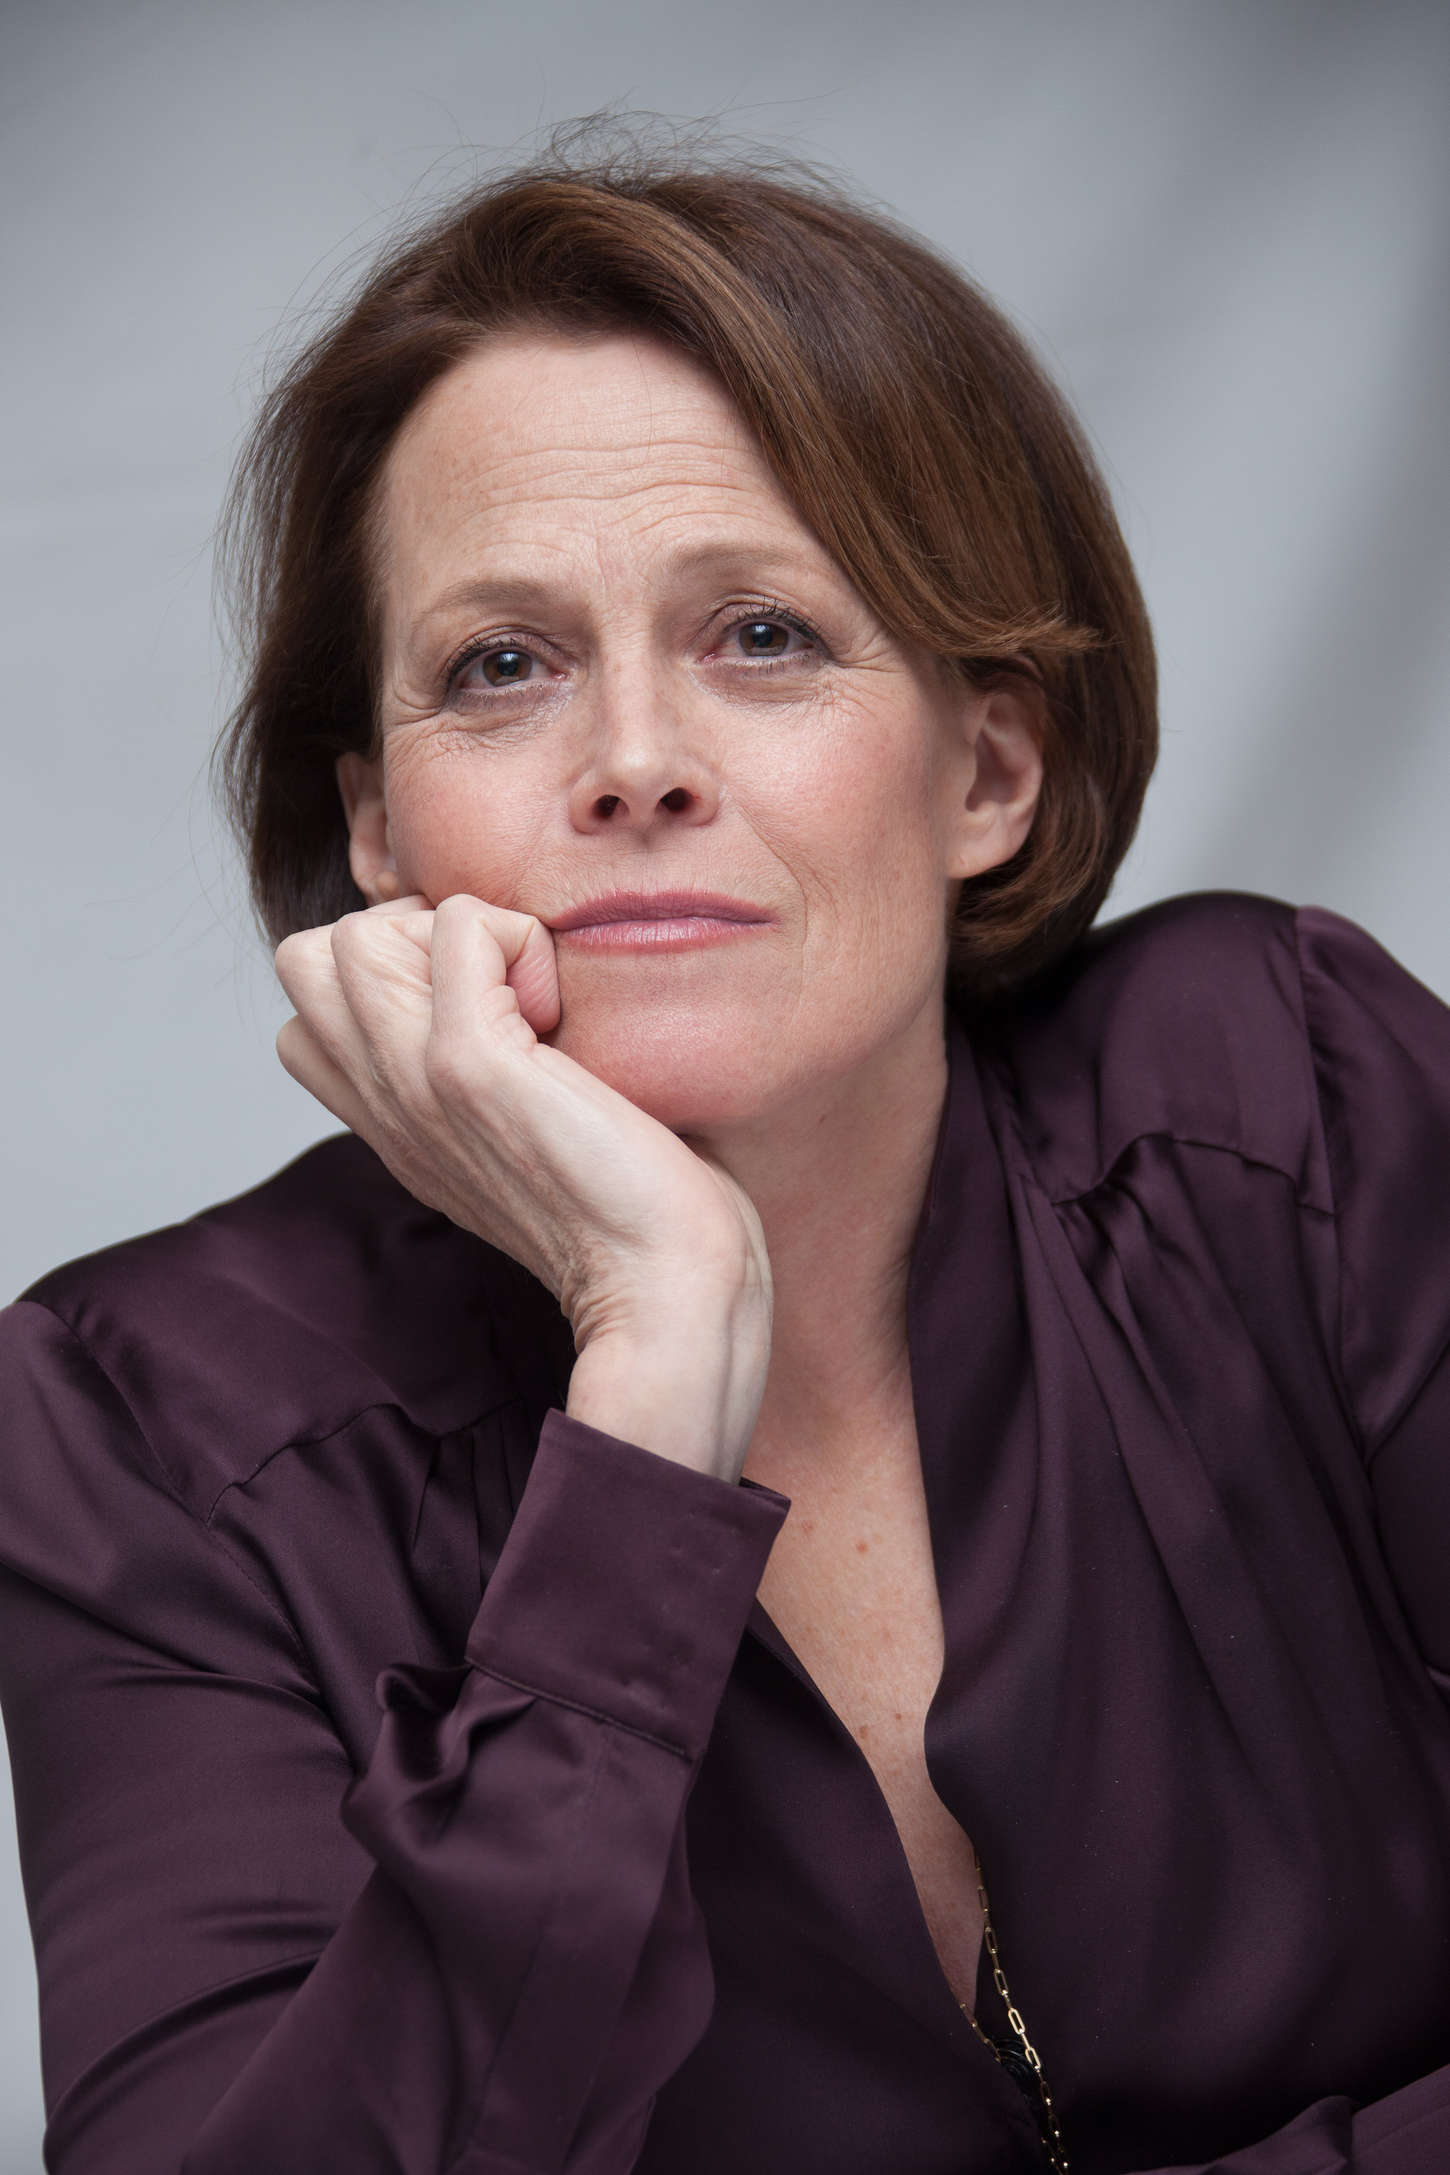 Sigourney Weaver Chappie Press Conference Portraits in New York